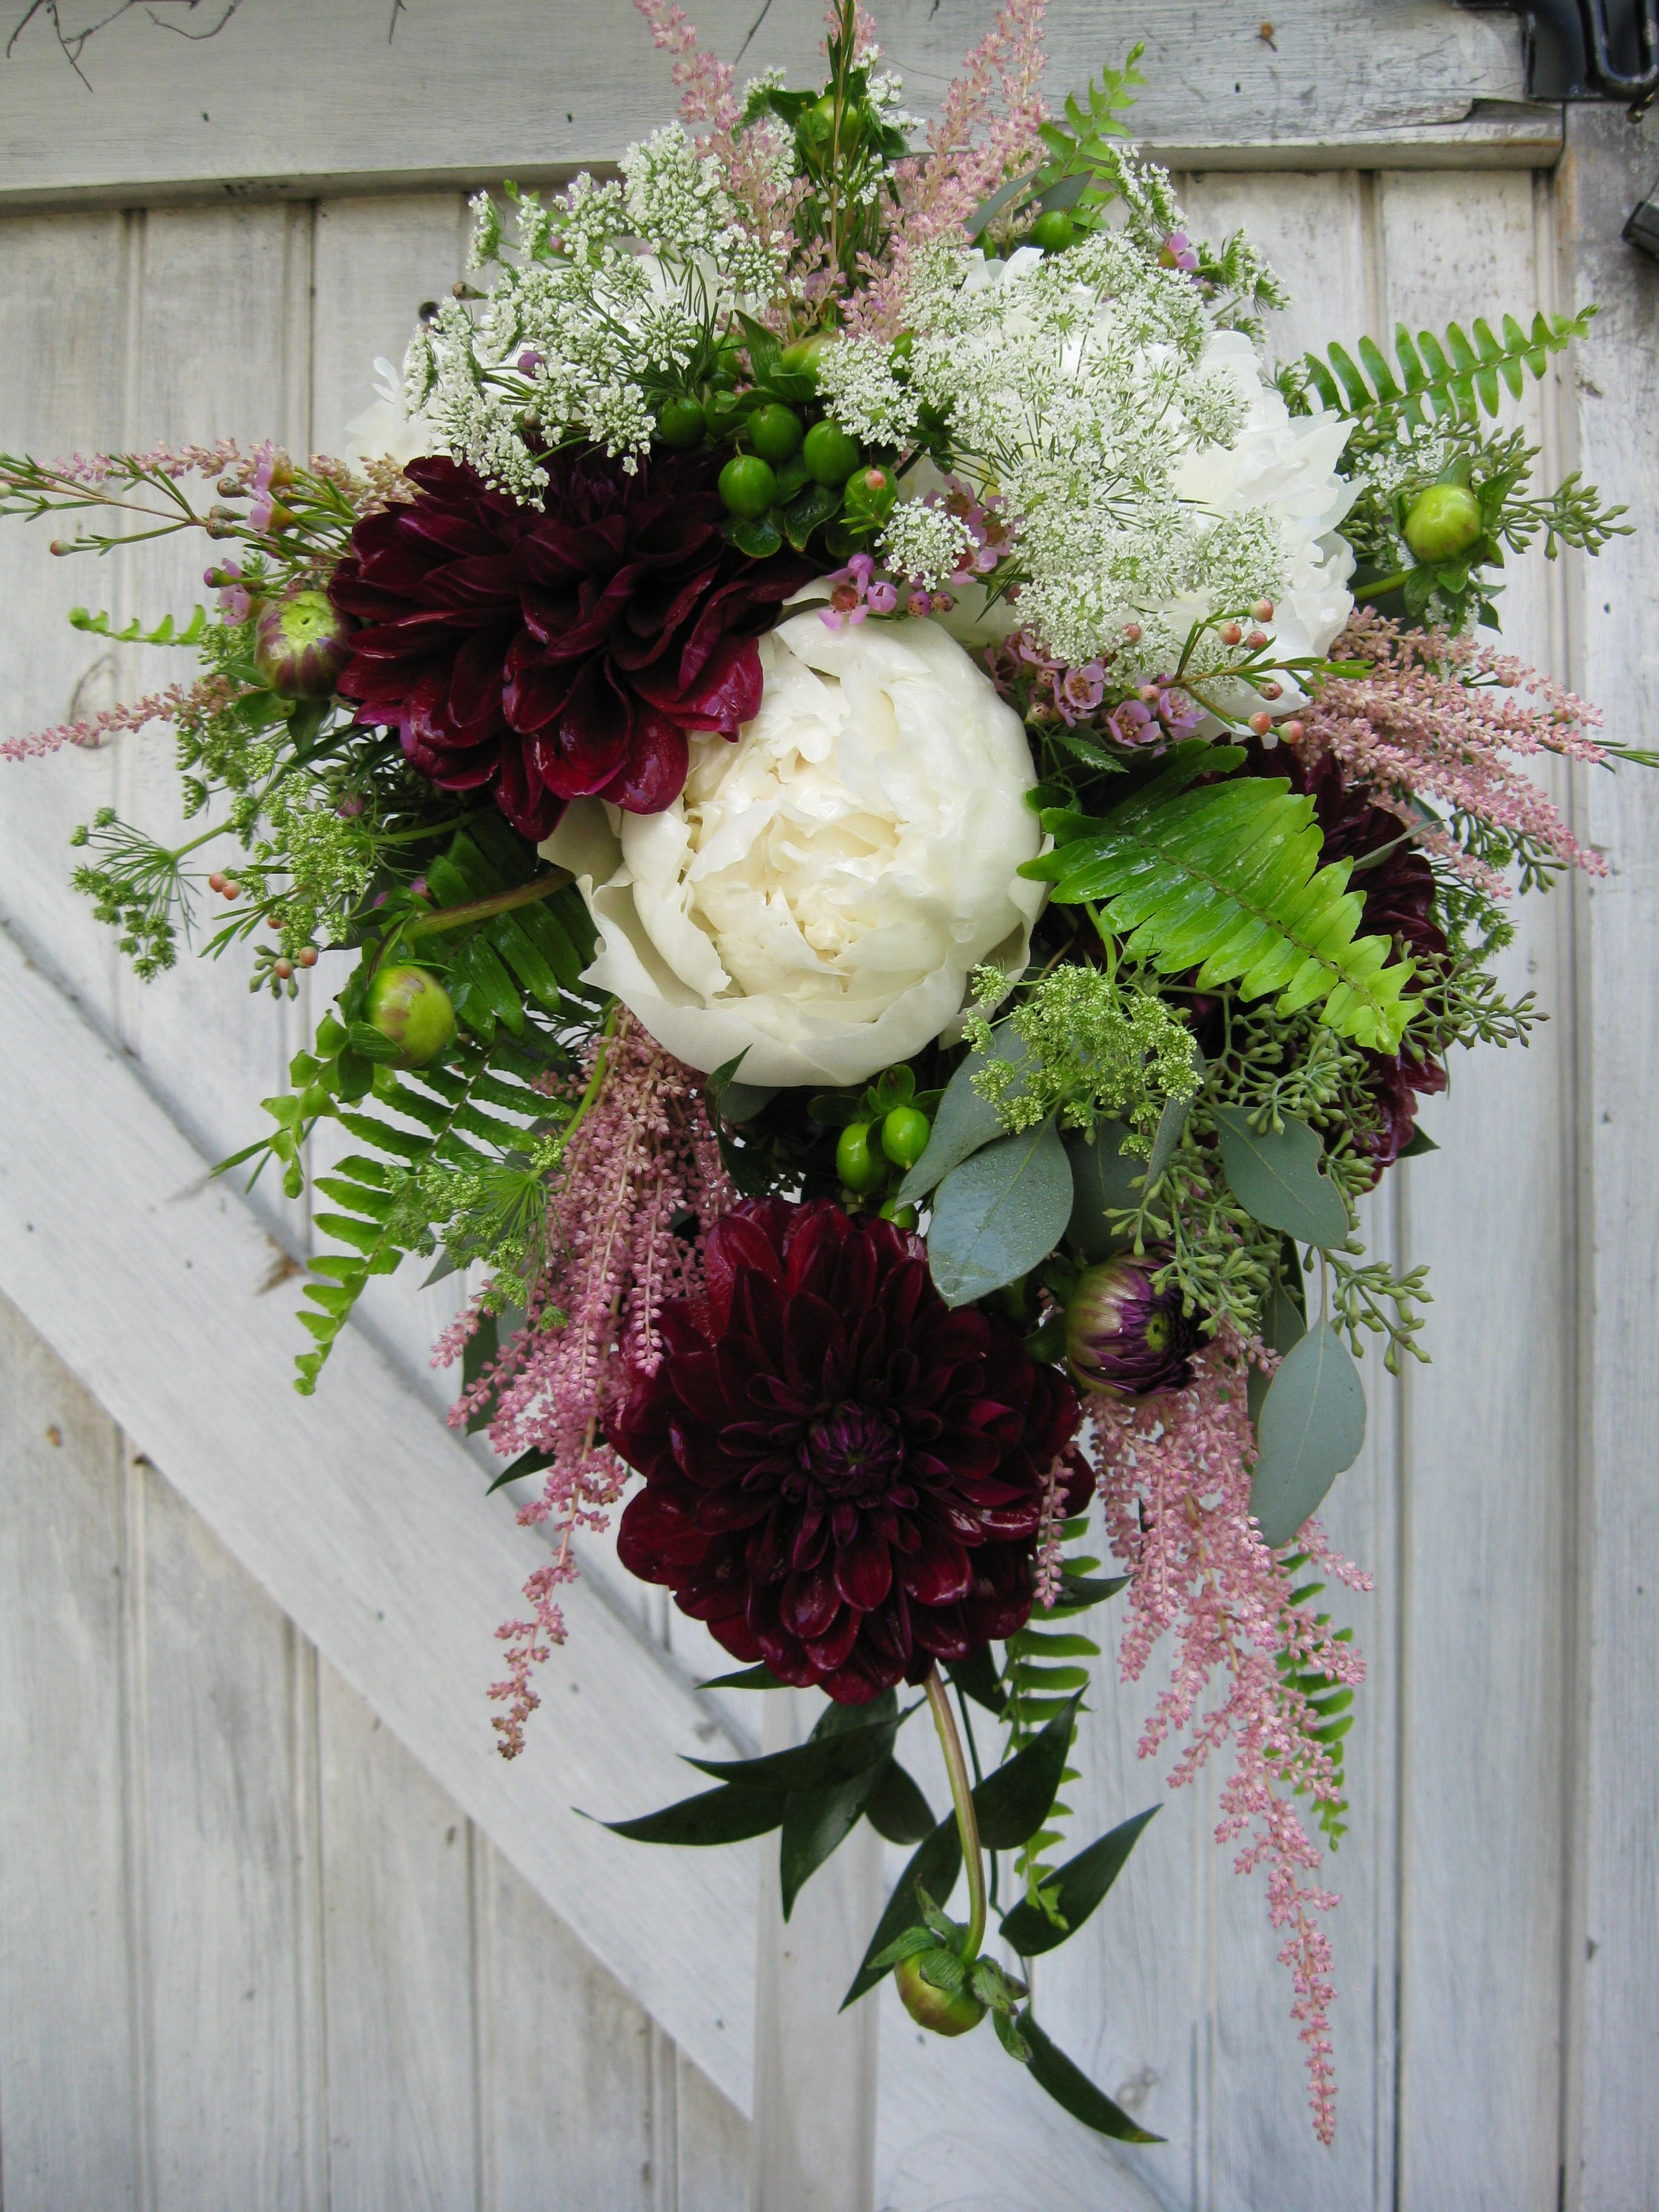 This teardrop bridal bouquet features white peonies